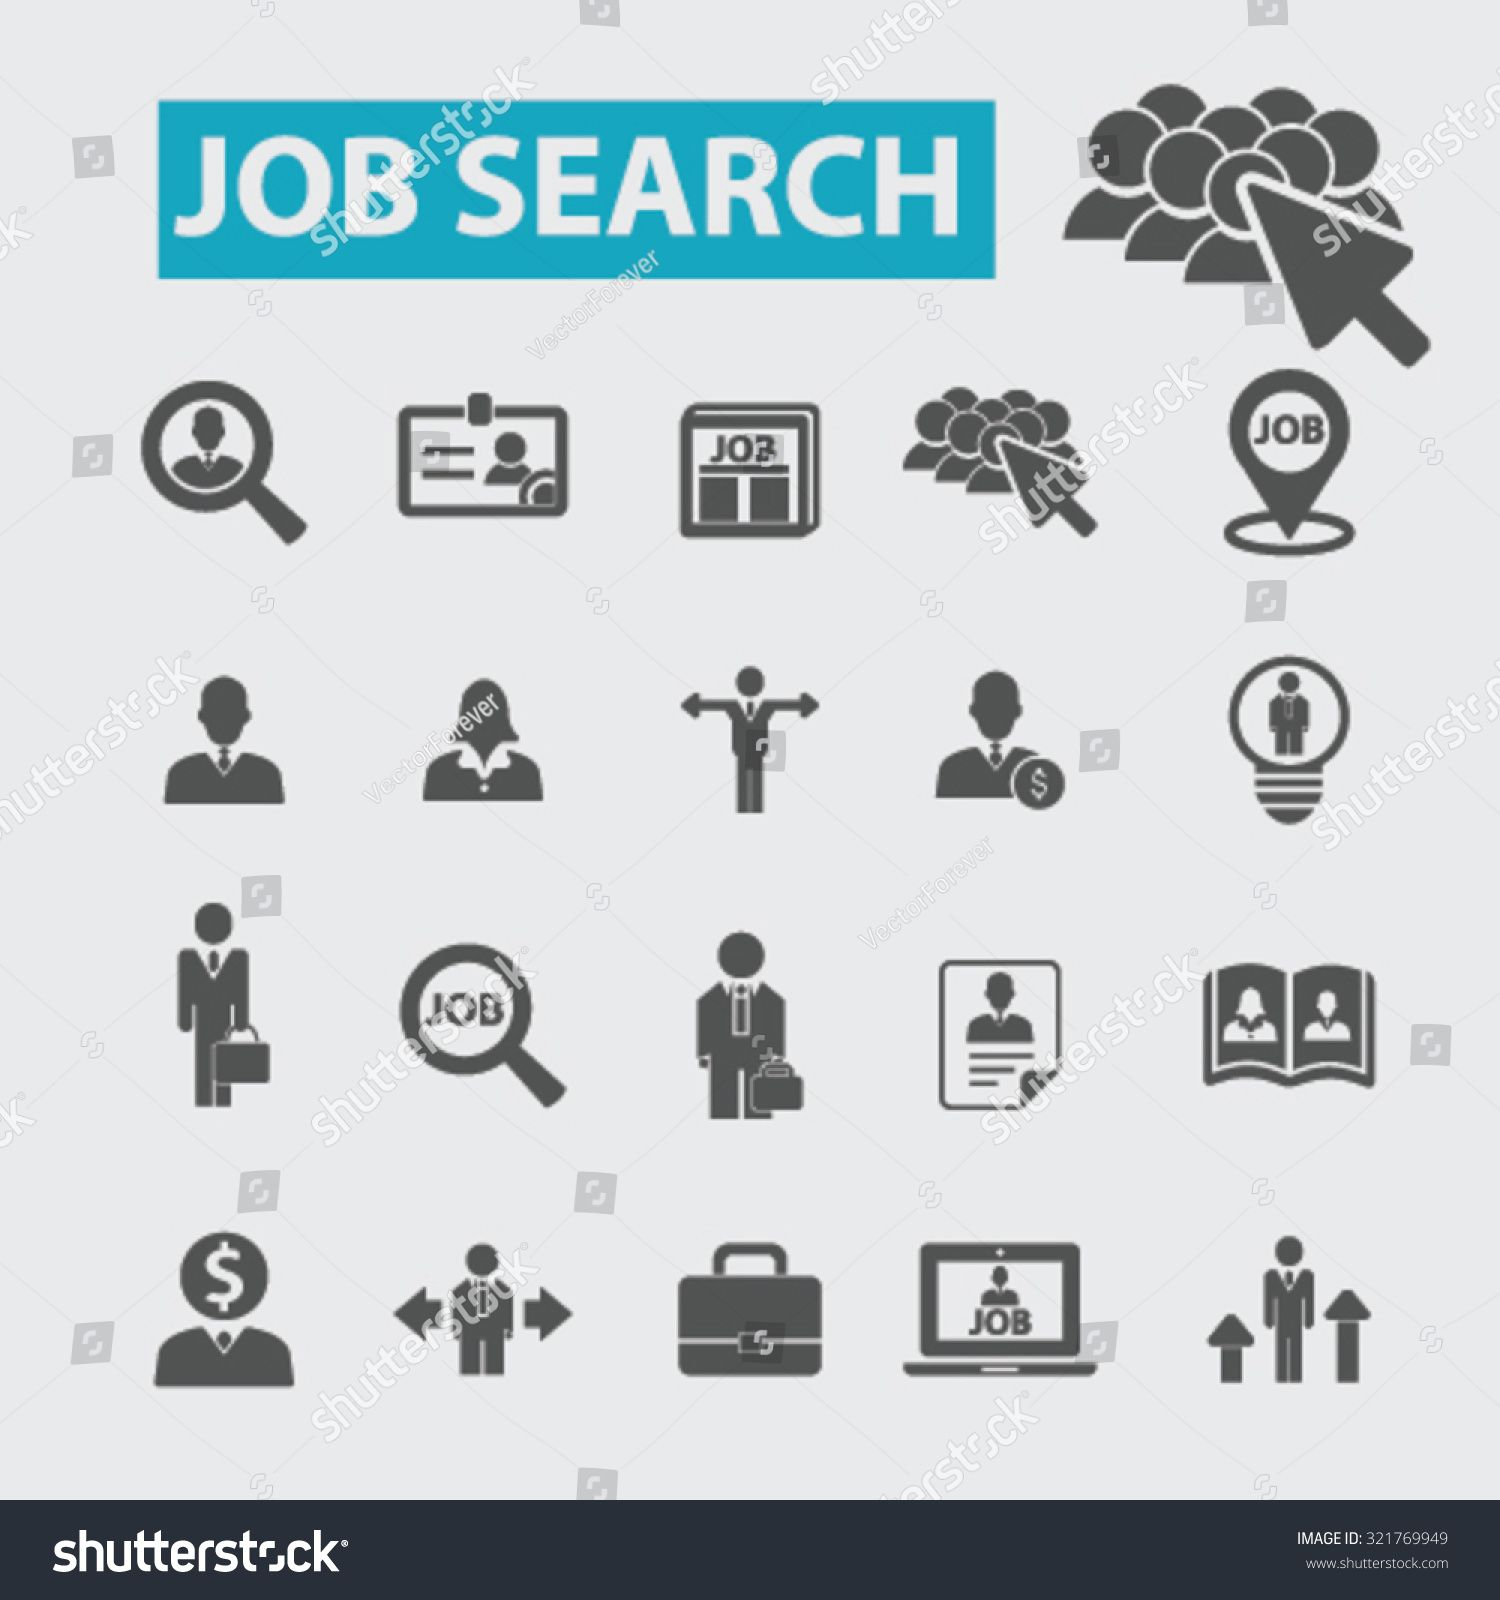 Job Search Icons Ad Advertisement Job Search Icons Search Icon Job Search Photoshop Elements